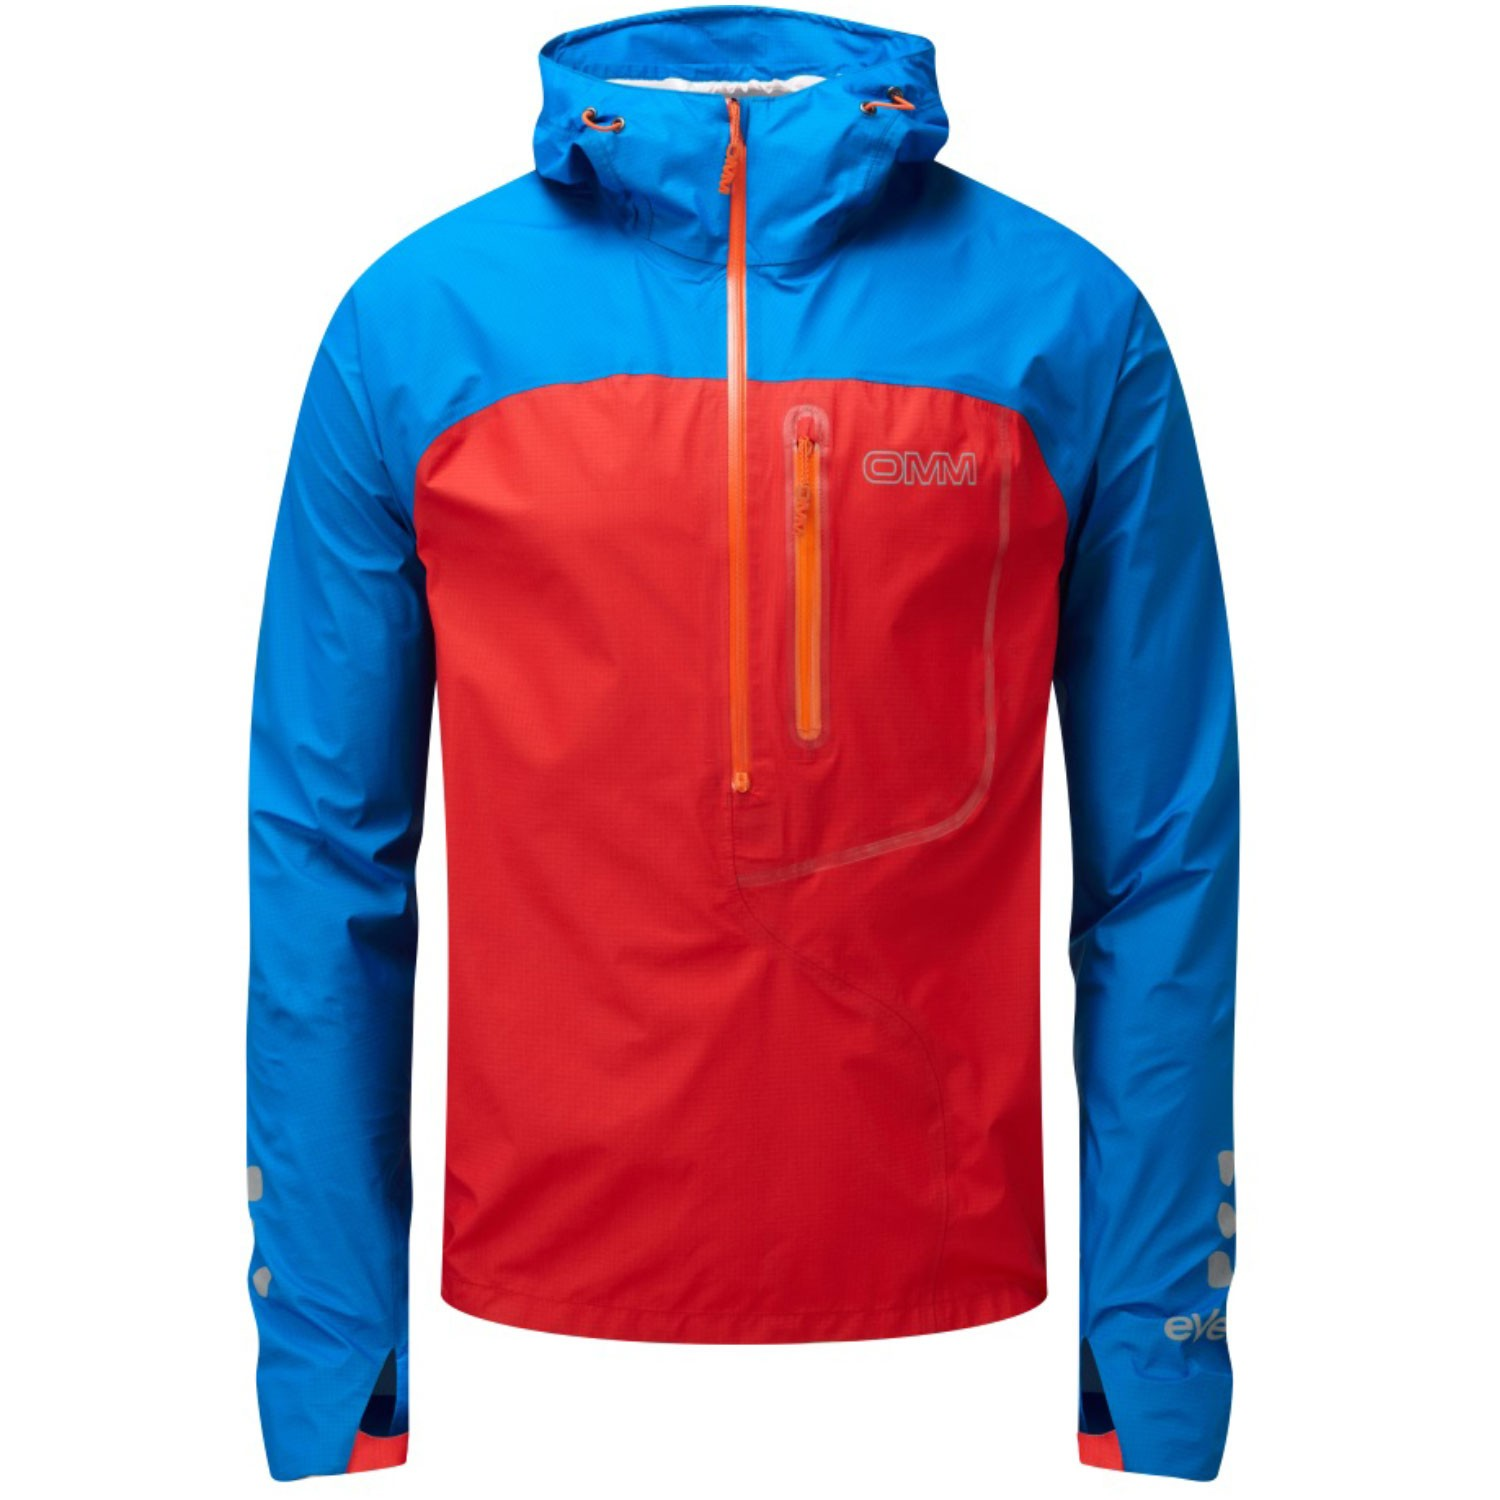 OMM - Aether Smock Waterproof Running Jacket